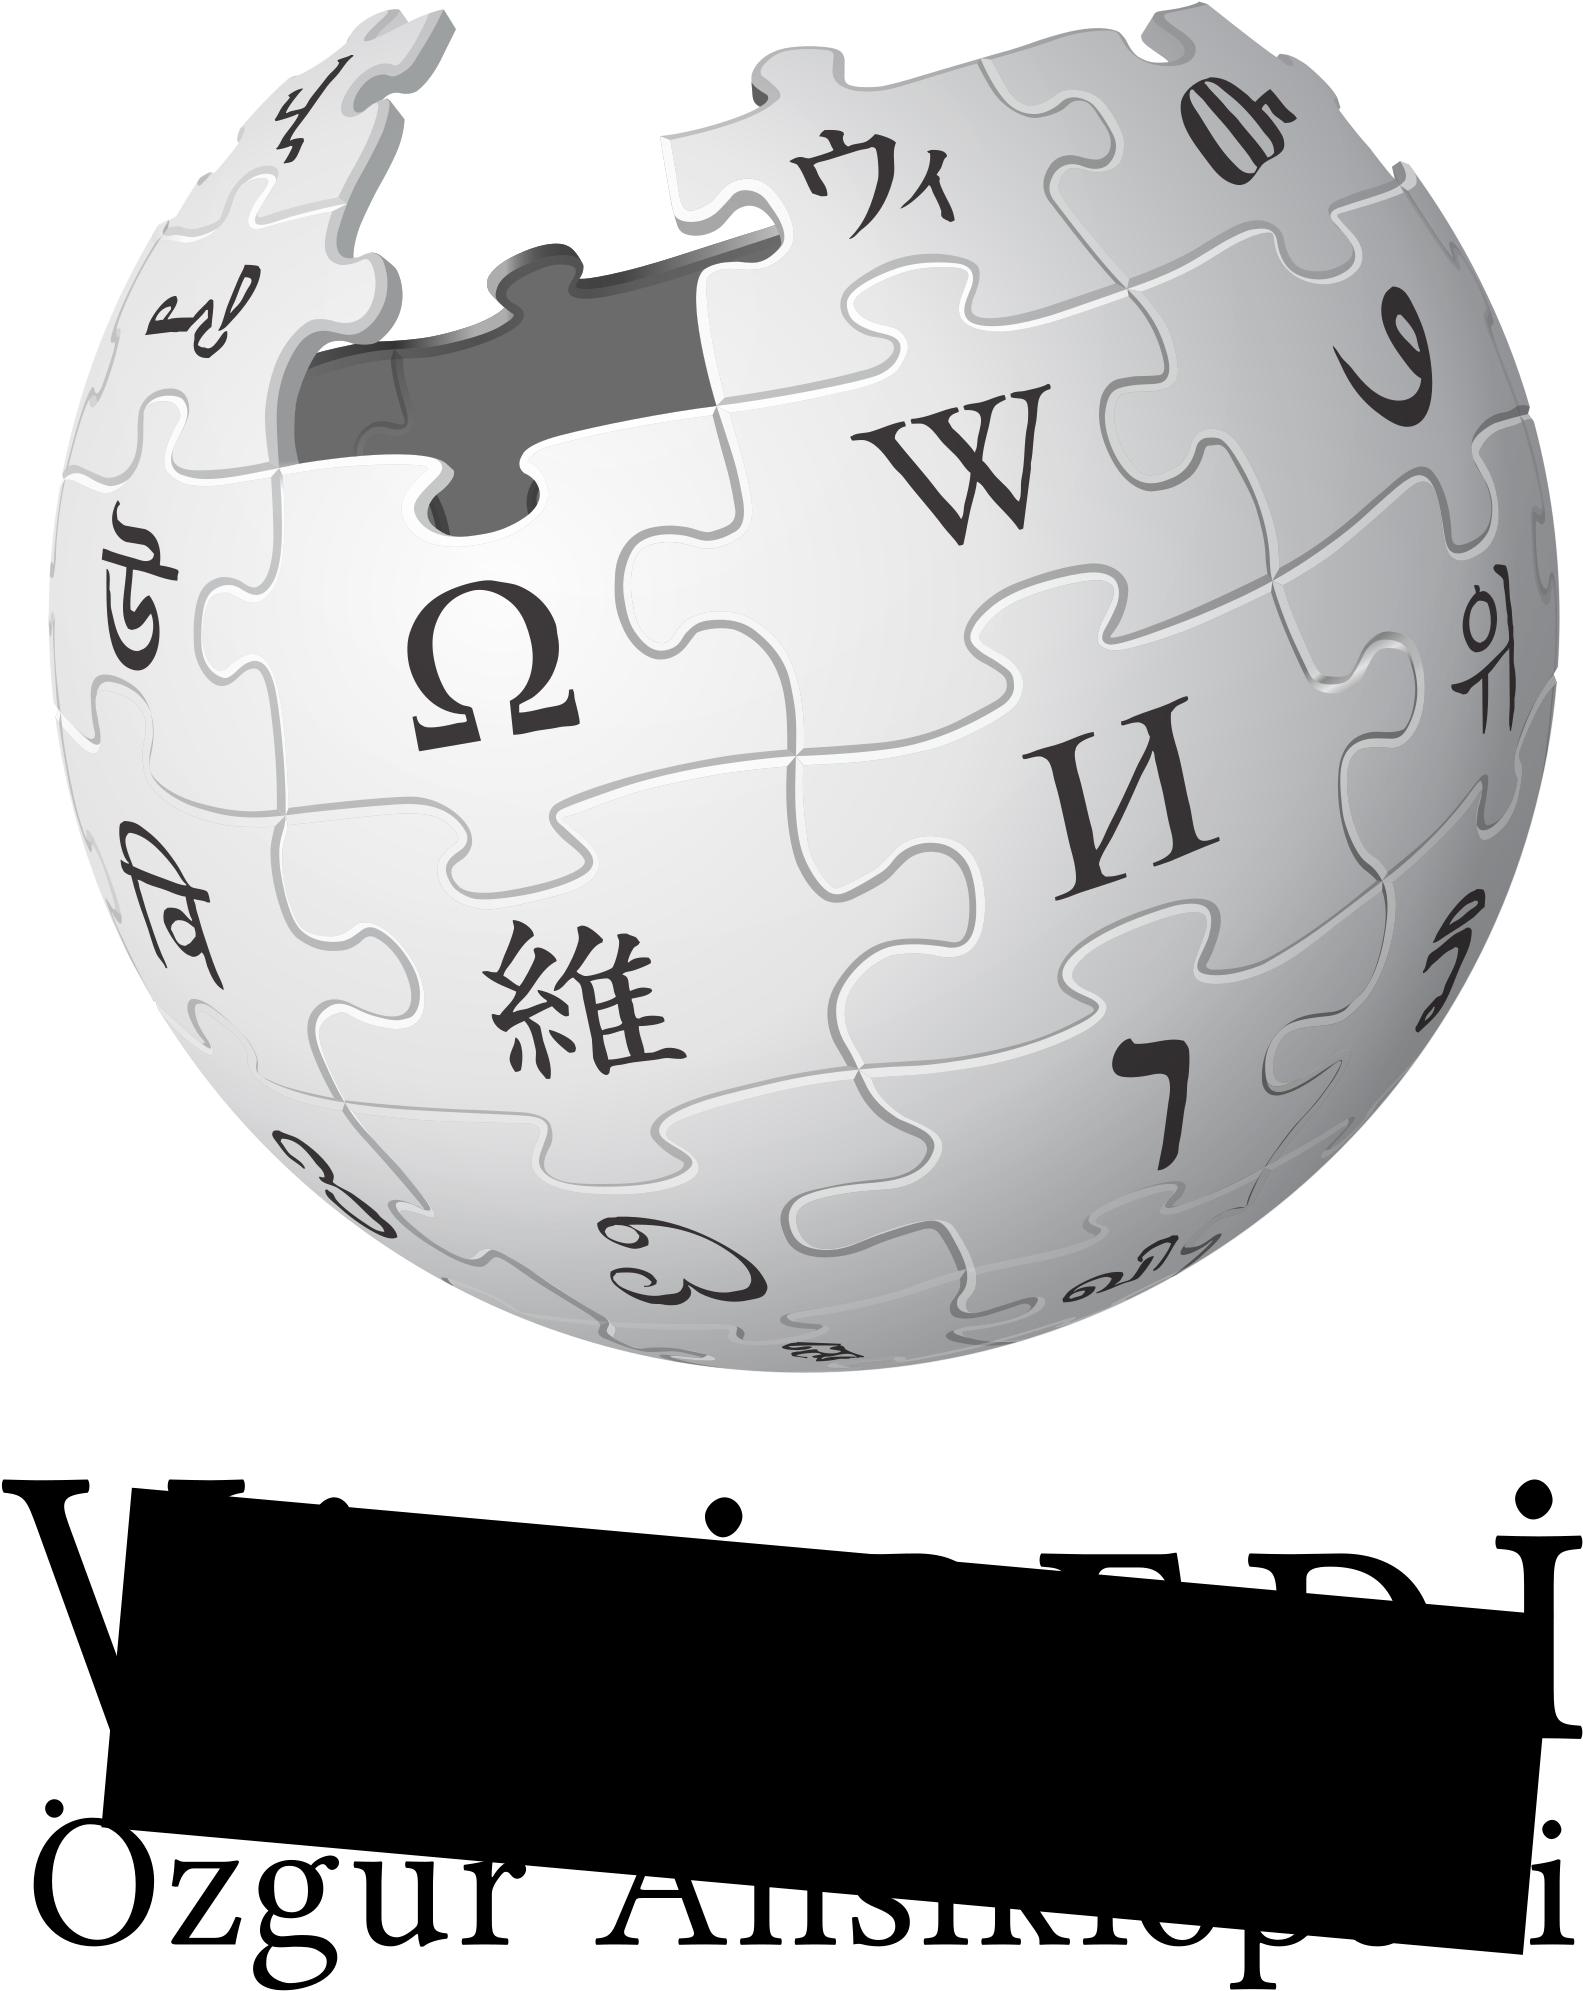 Download The Turkish Wikipedia Logo With A Censor Bar Covering